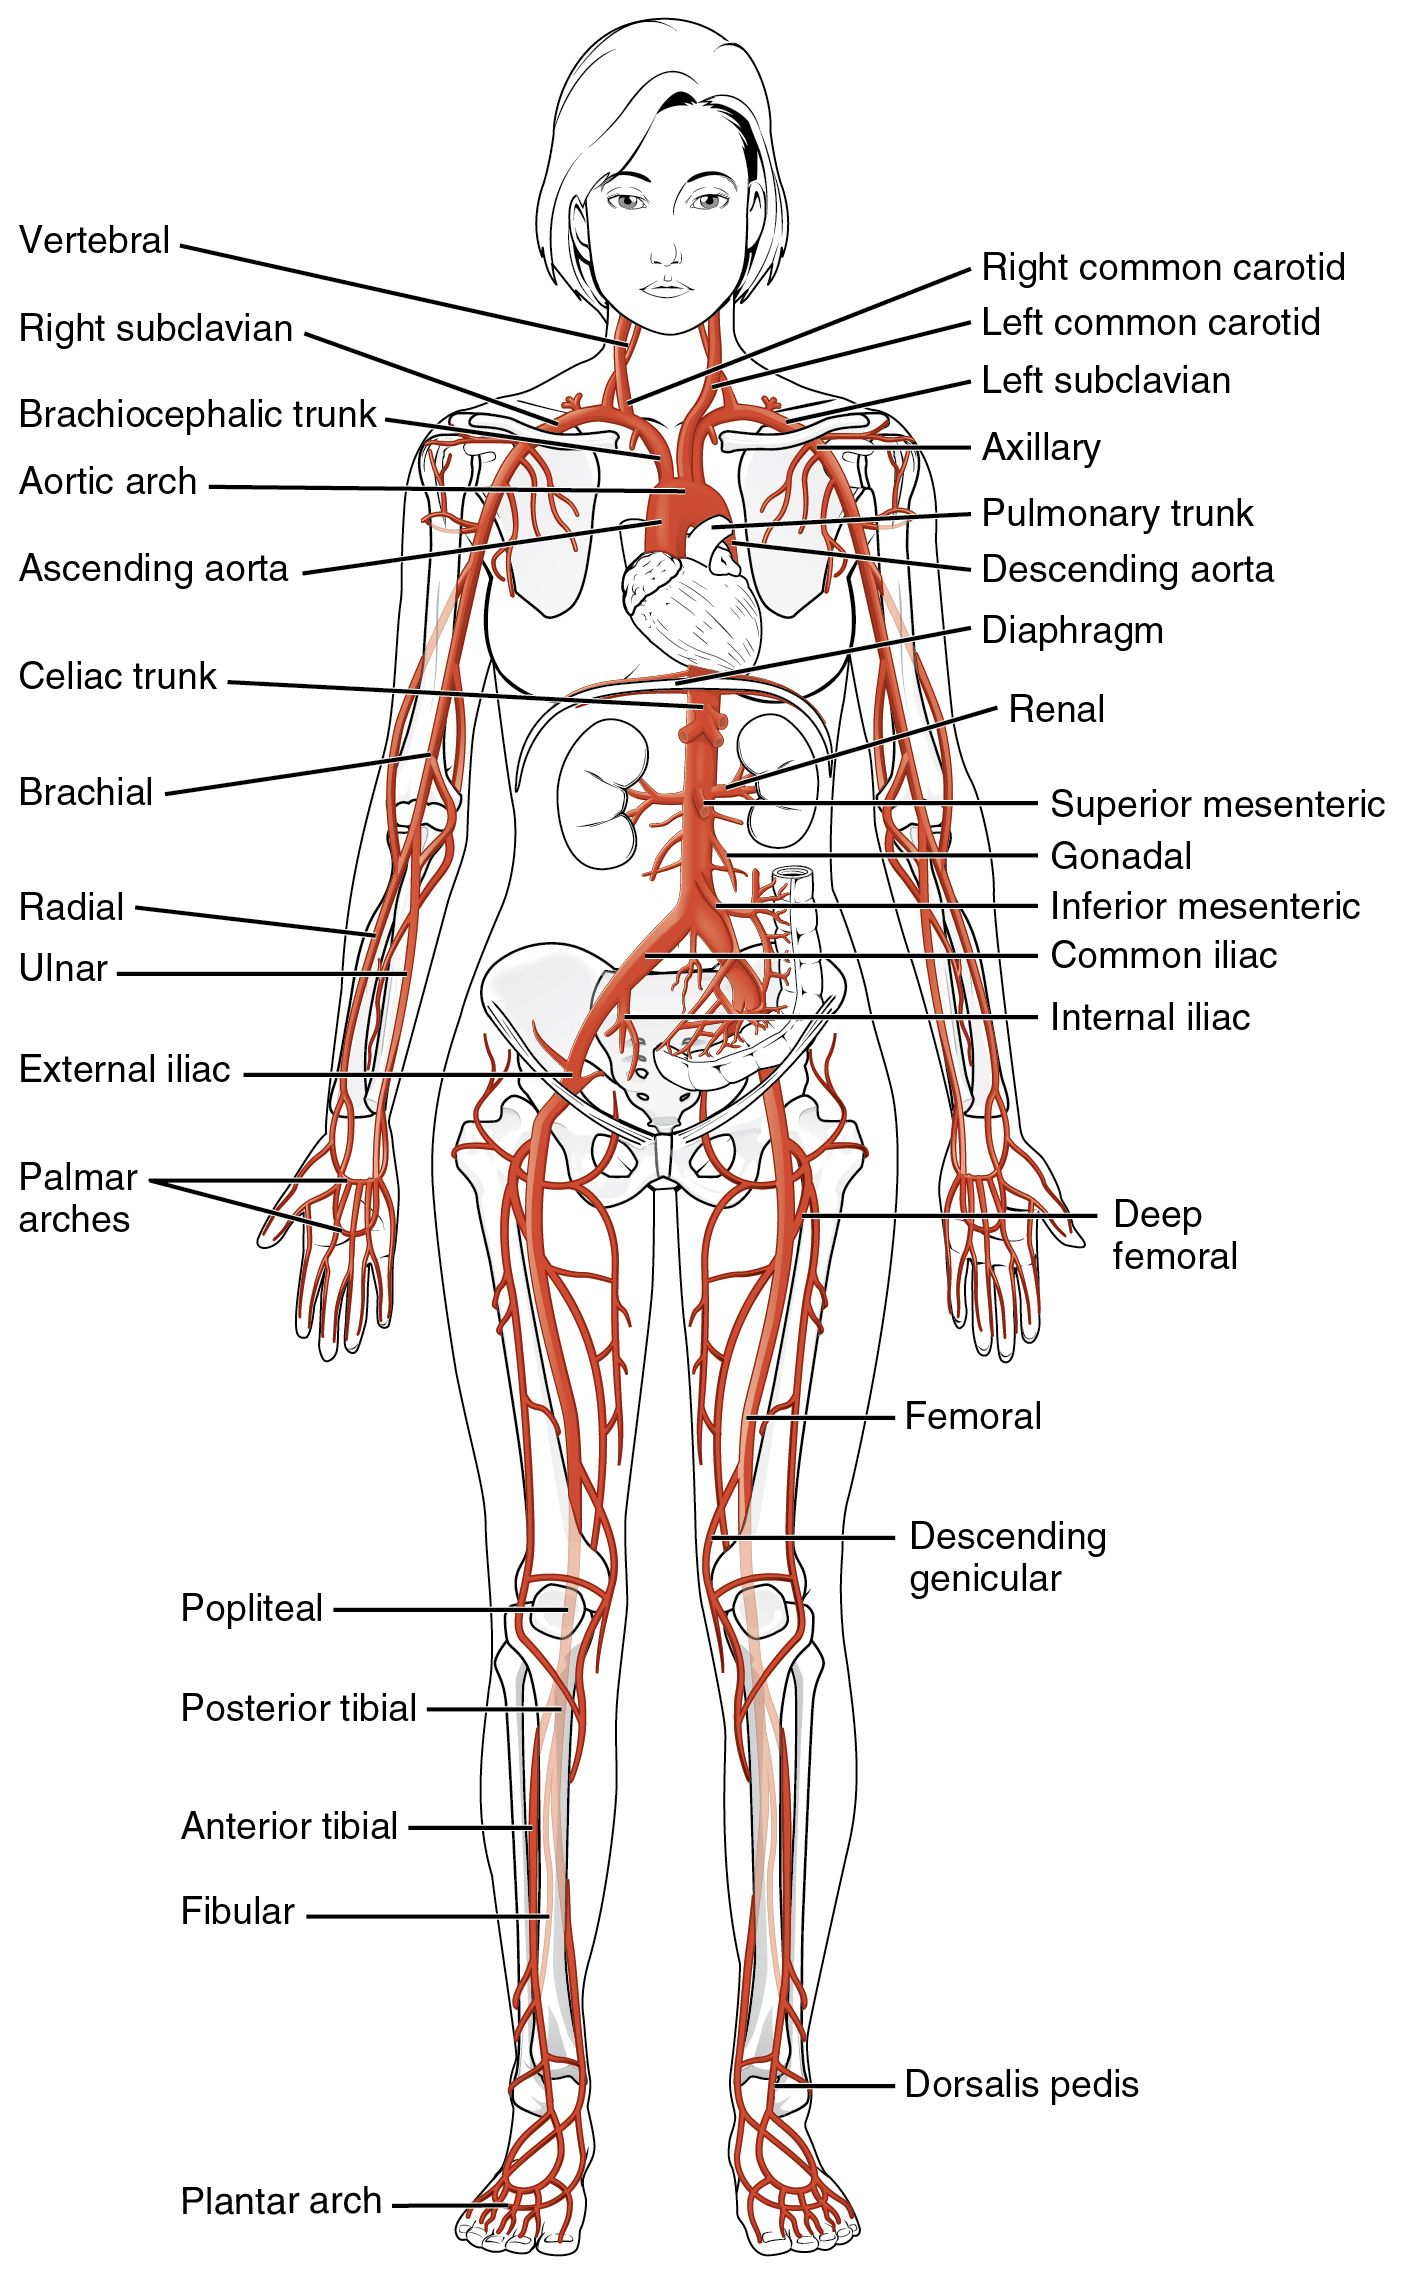 hight resolution of this diagrams shows the major arteries in the human body